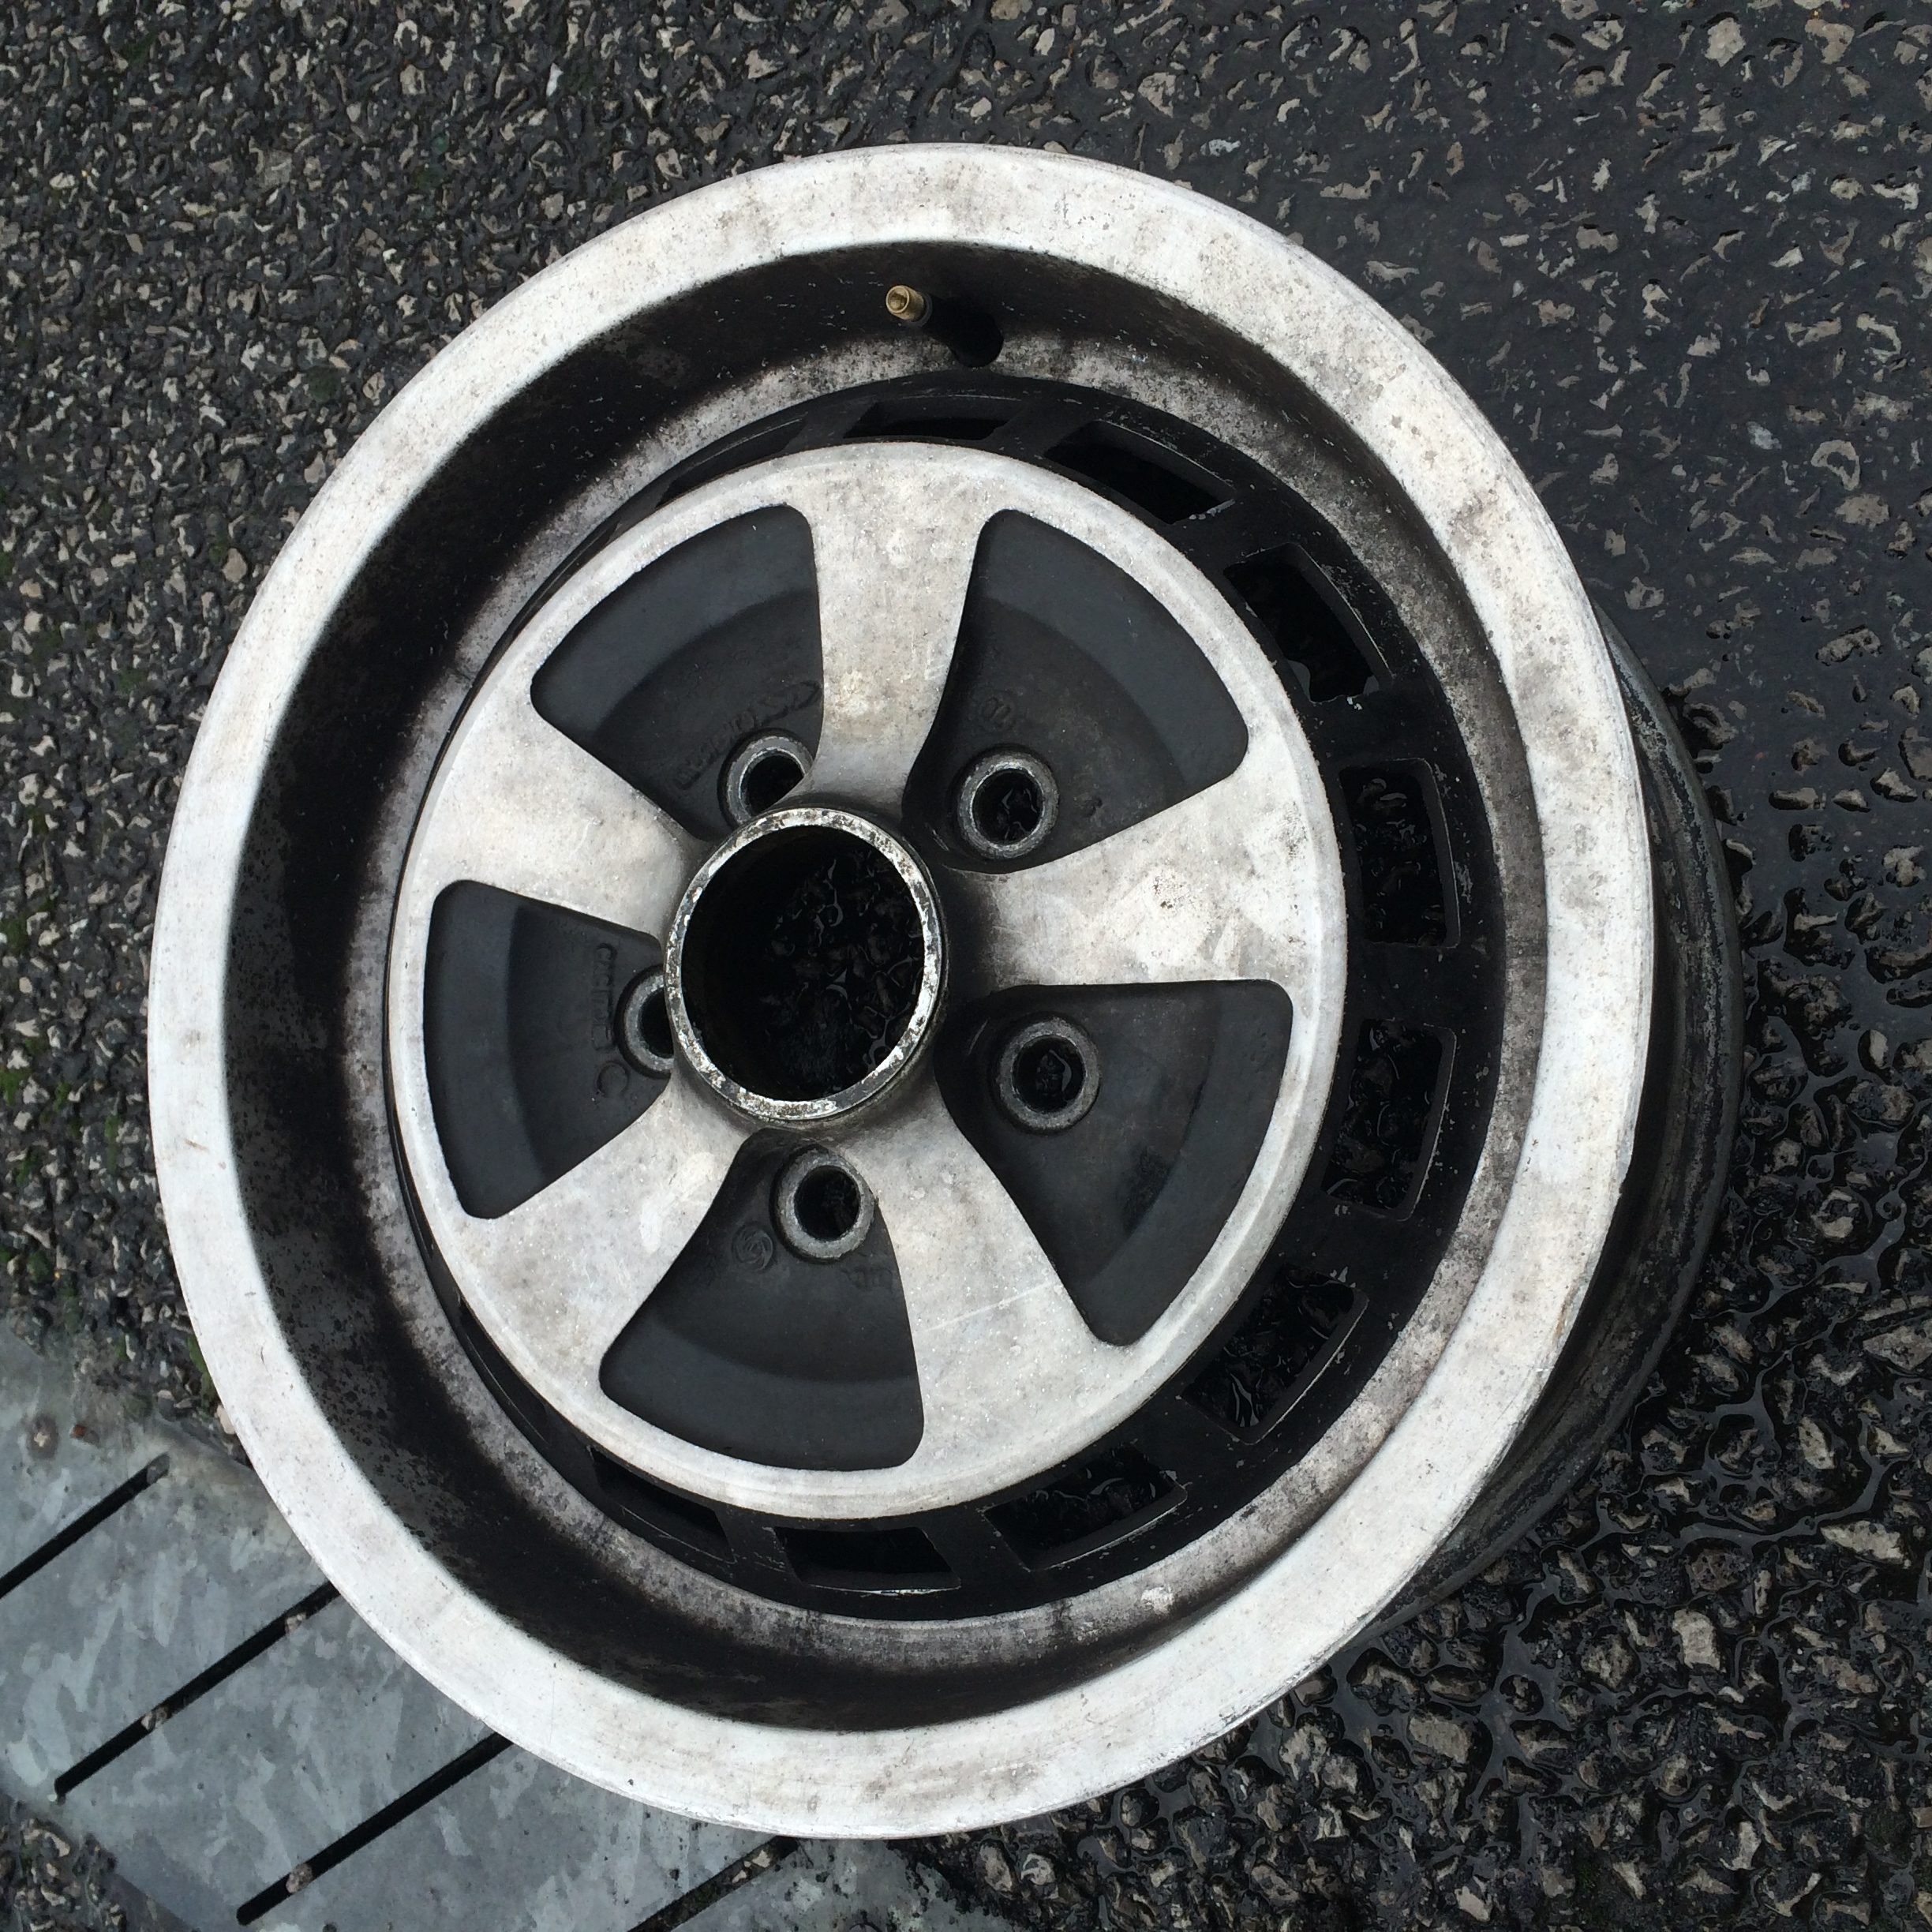 Jaguar wheel before refurbishment